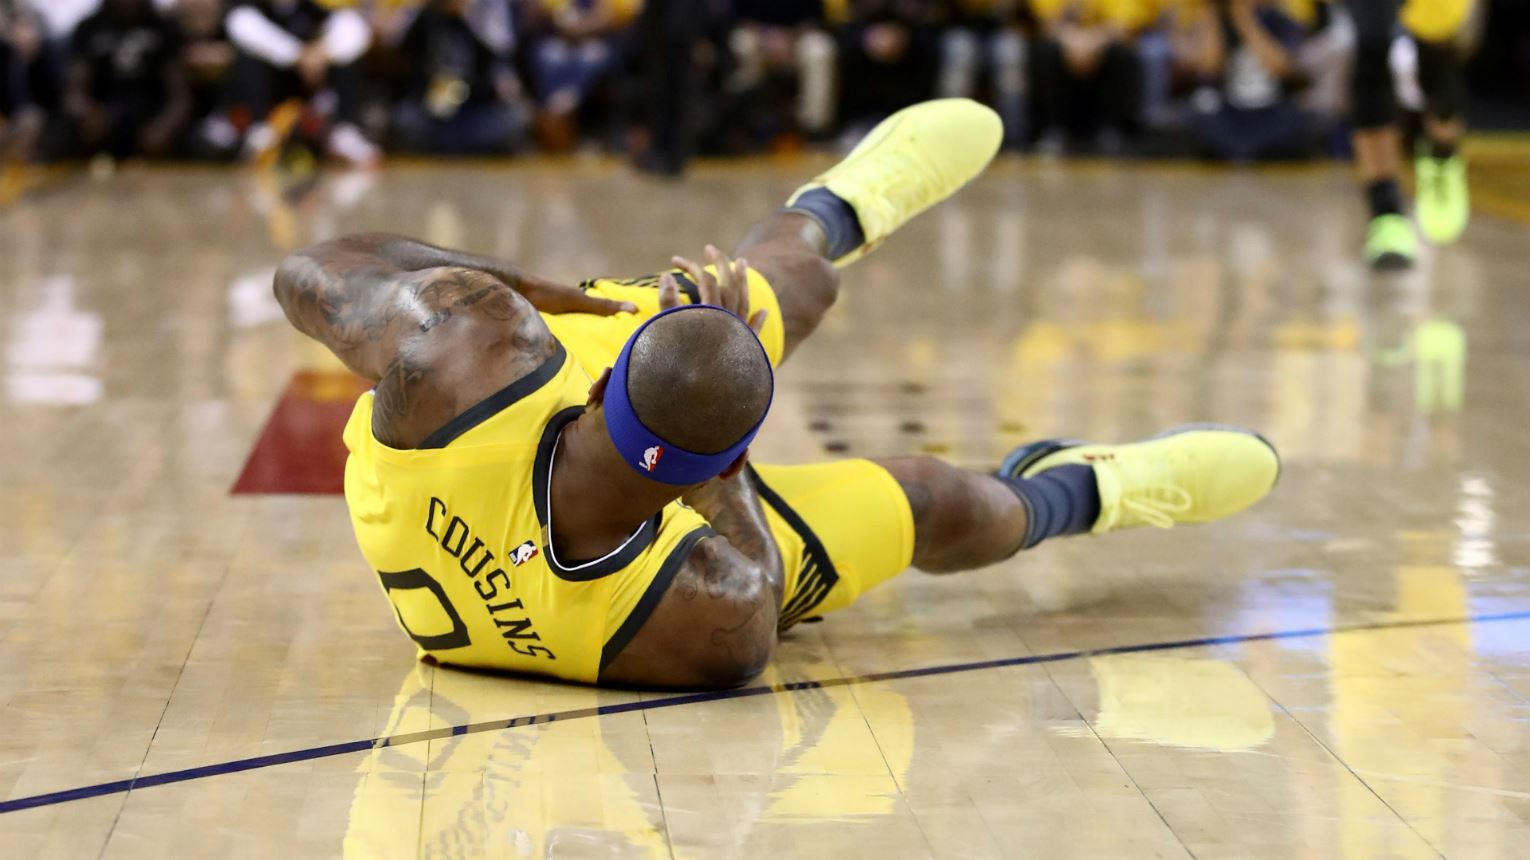 Warriors Confirm Cousins Has Torn Quad, Out Indefinitely